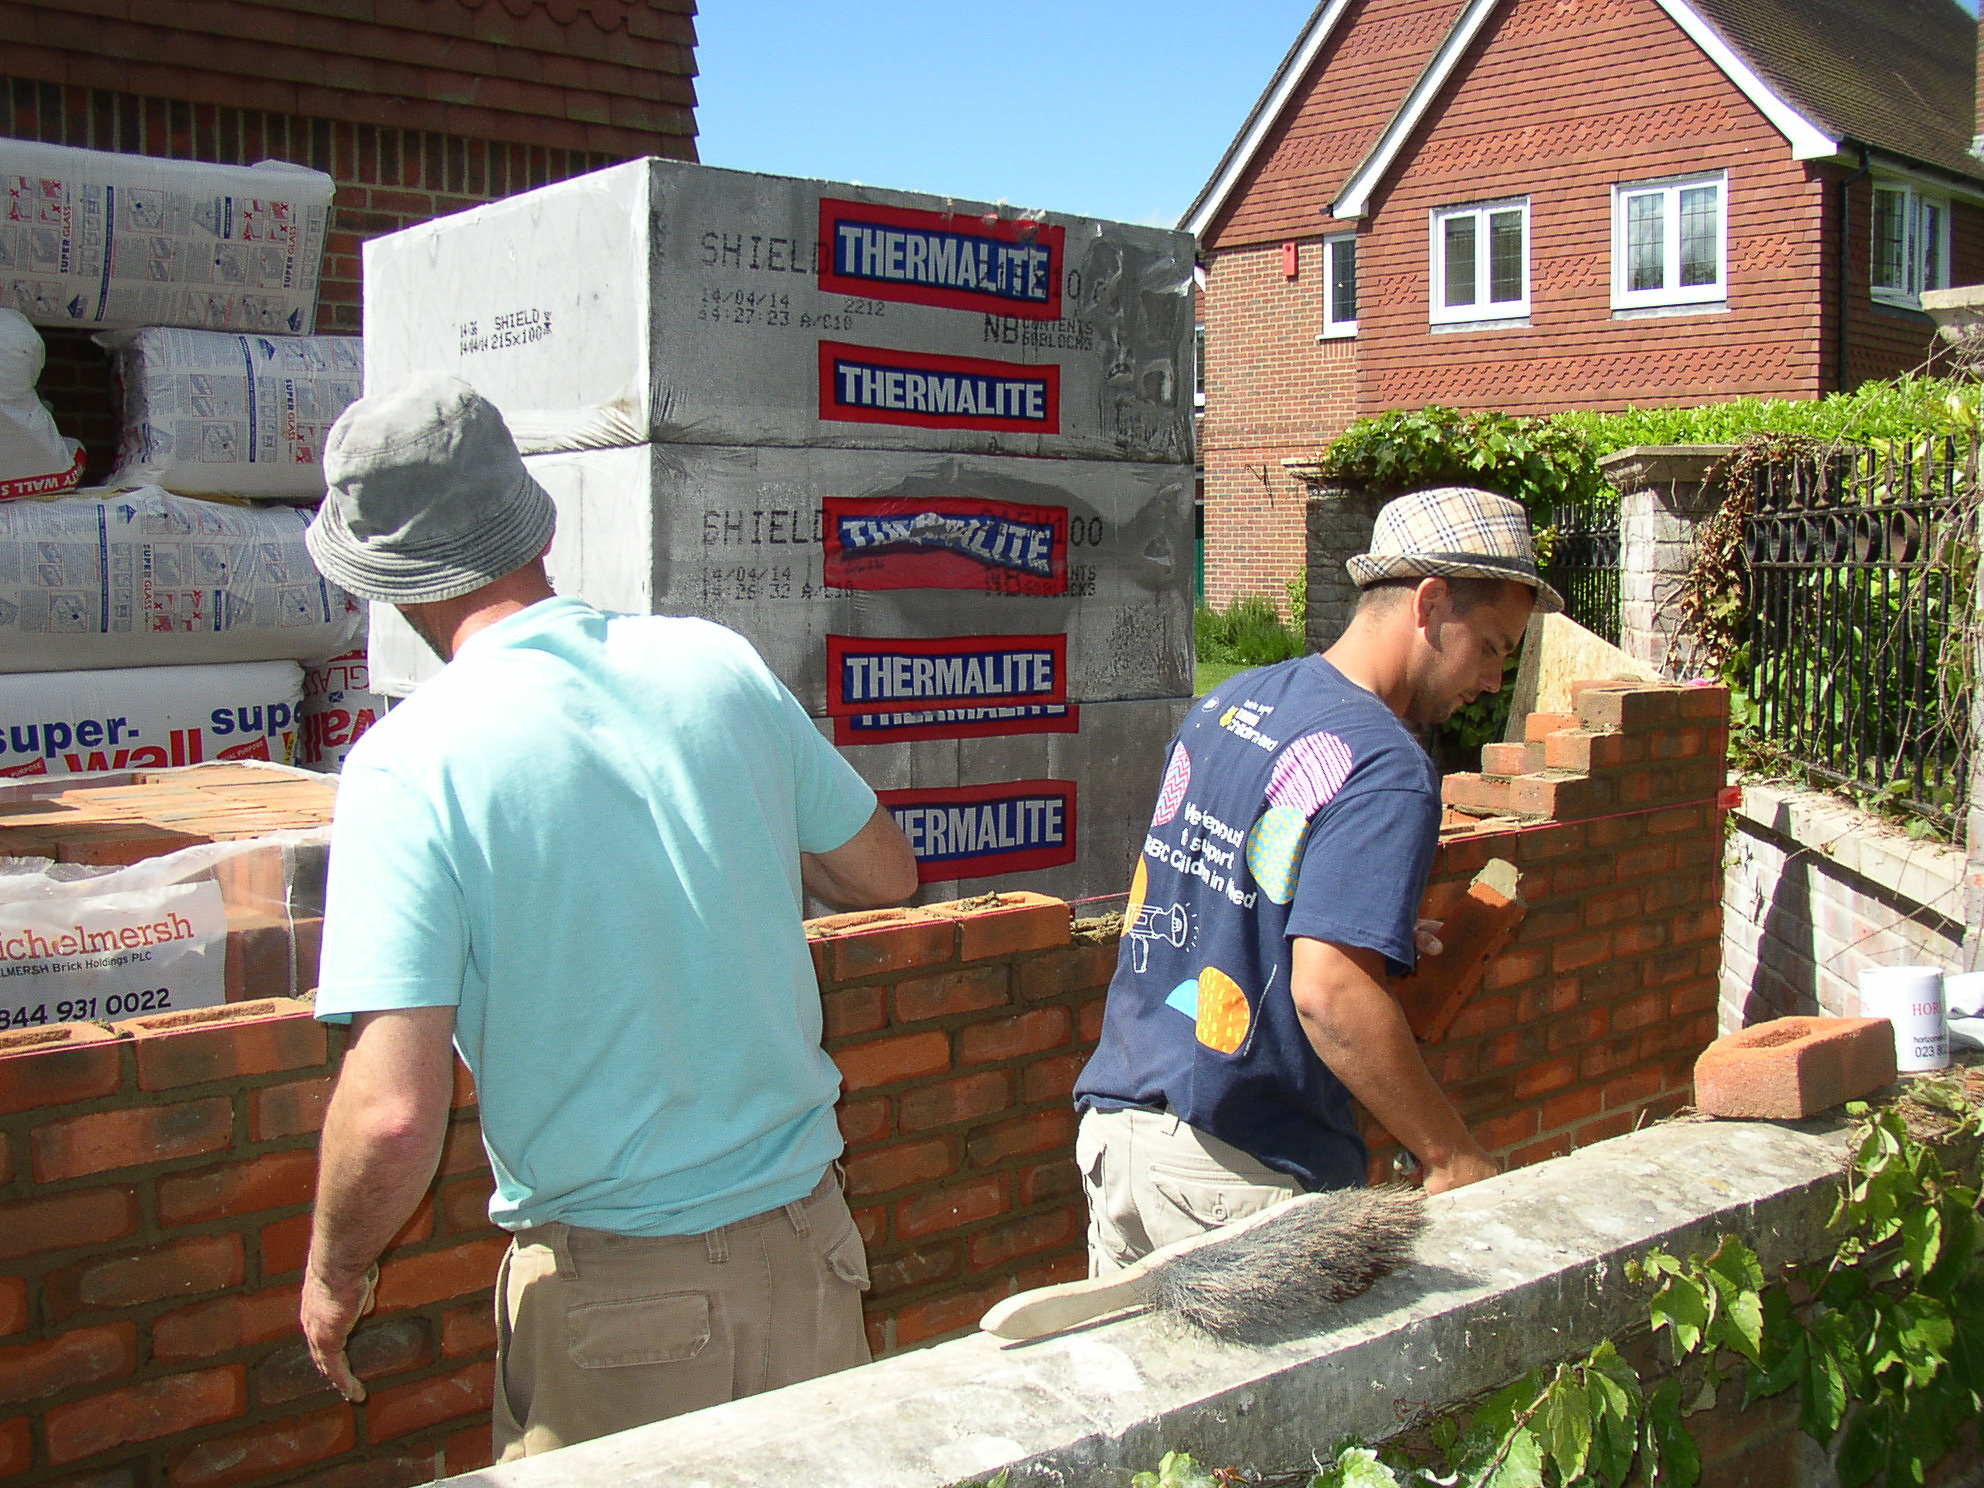 builders working on site